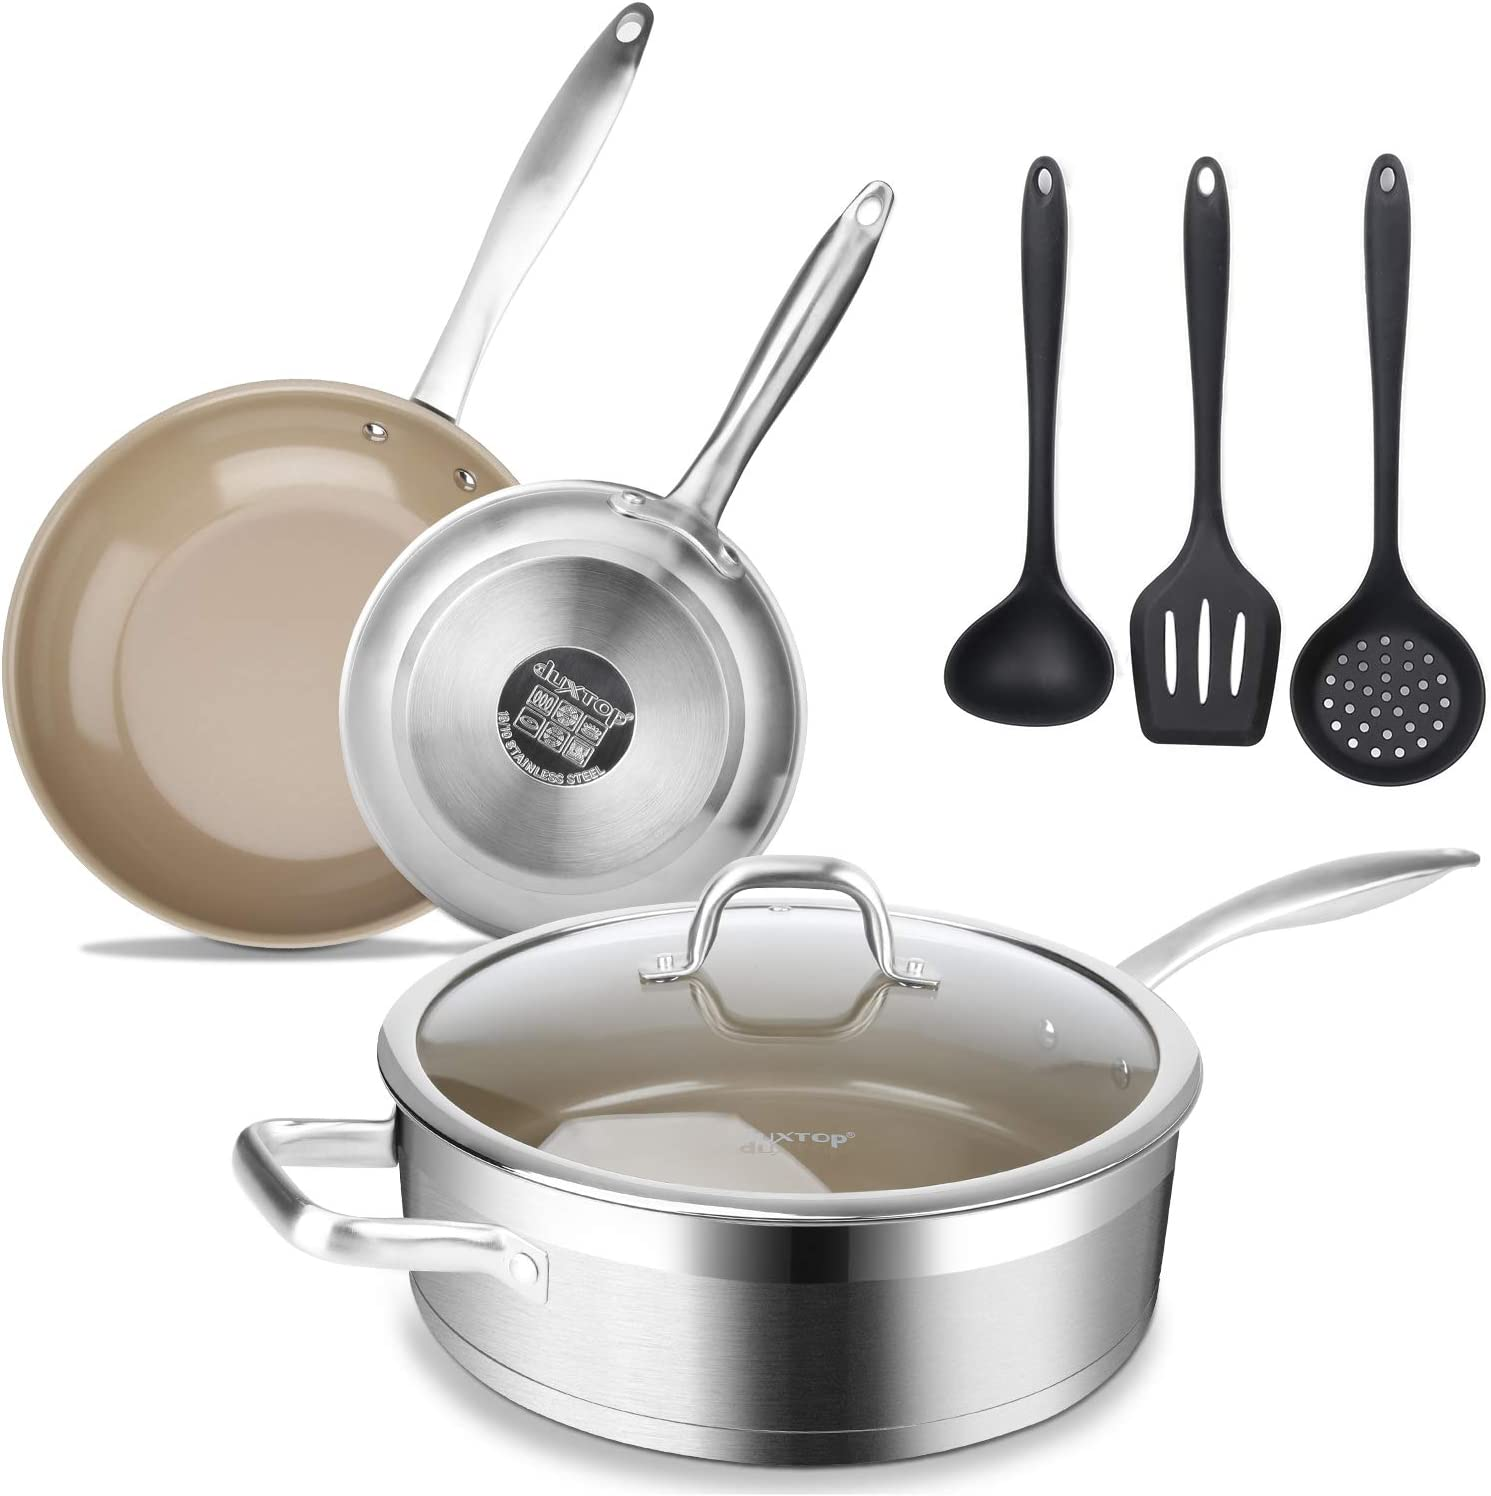 duxtop SSCC-7PC Coated Nonstick Pans Set, One Size, Stainless Steel